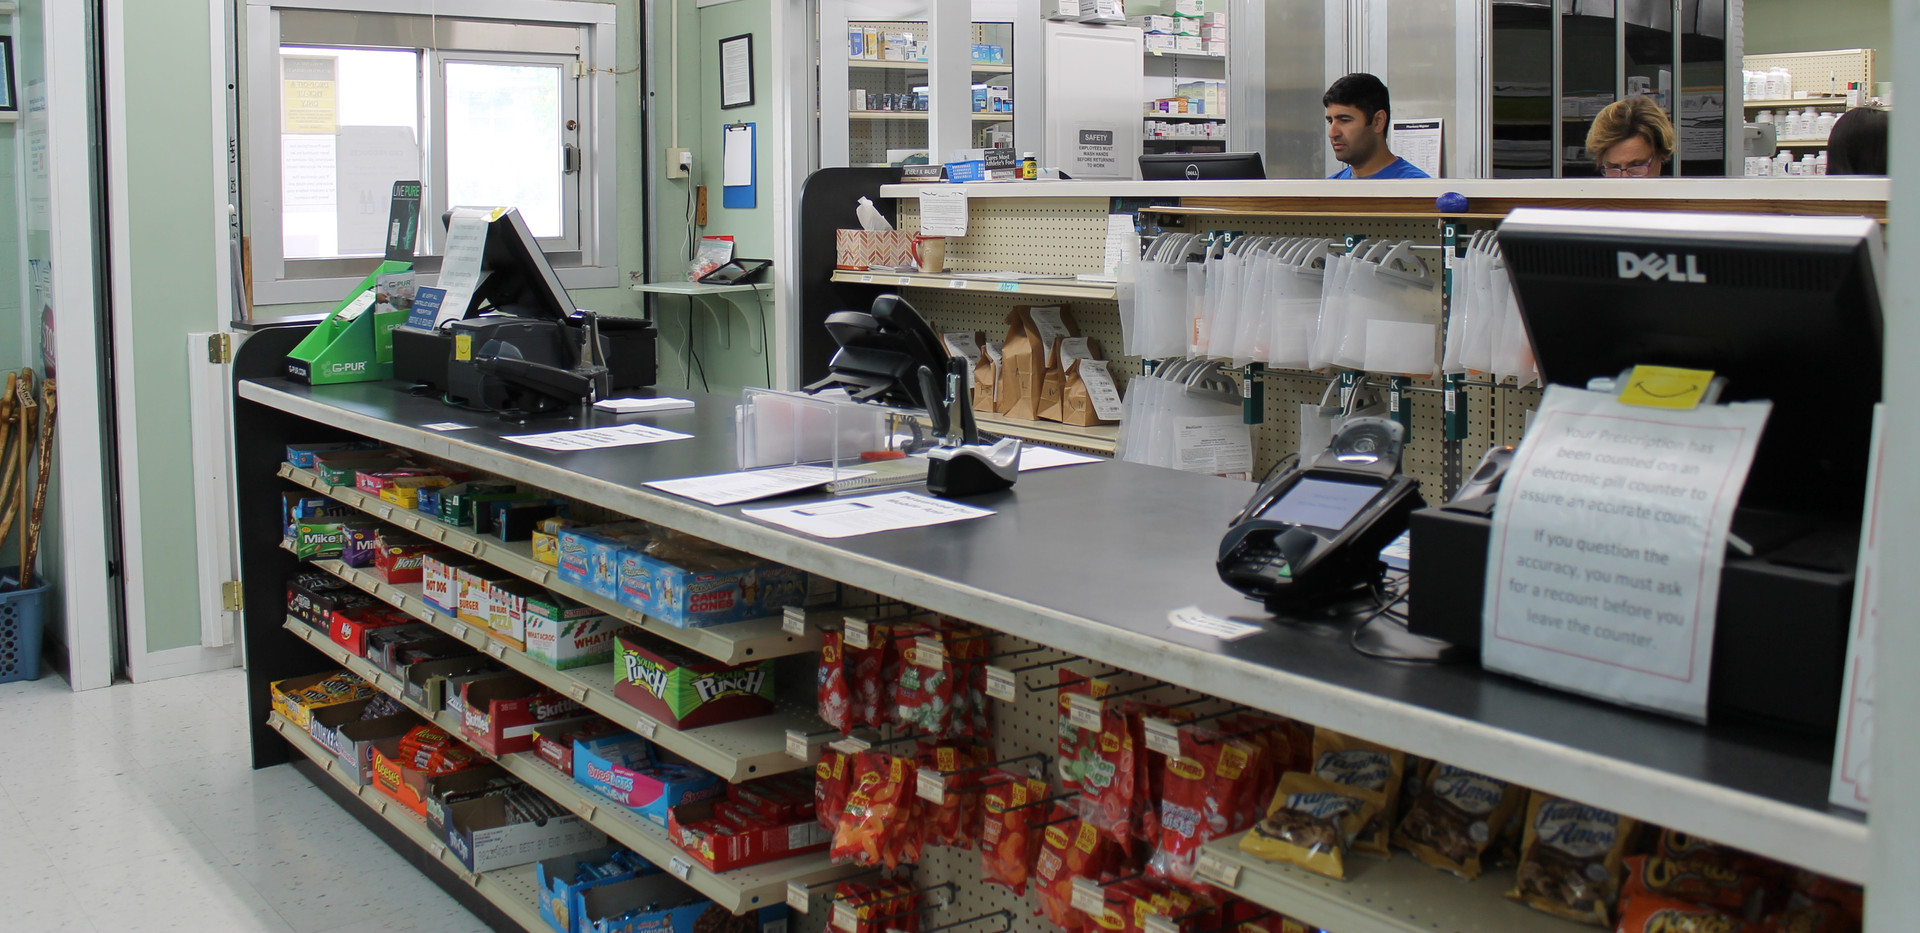 Wolfe's Pharmacy checkout counter